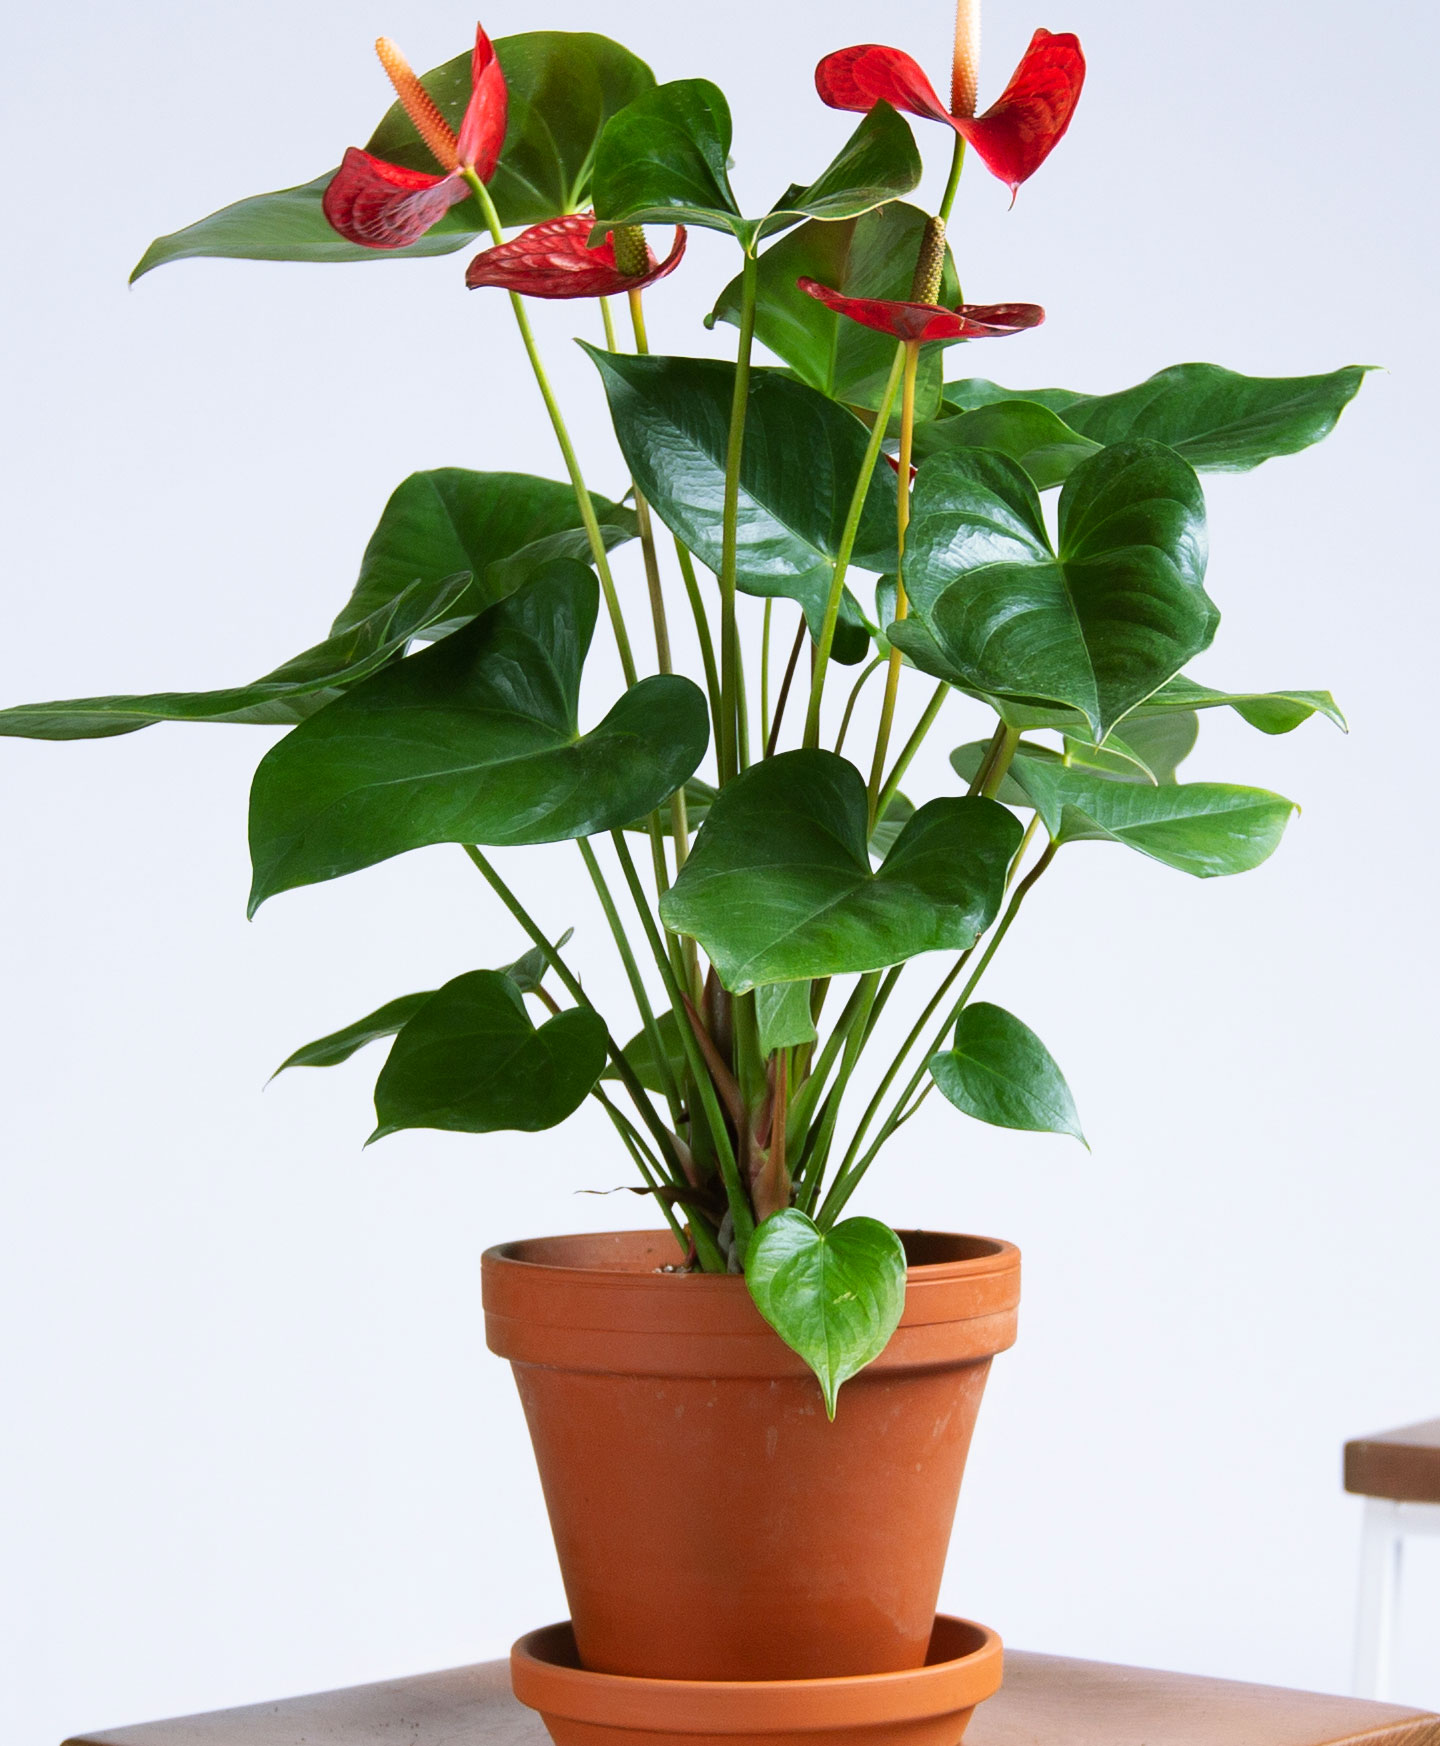 picture-of-red-anthurium-plant-photo